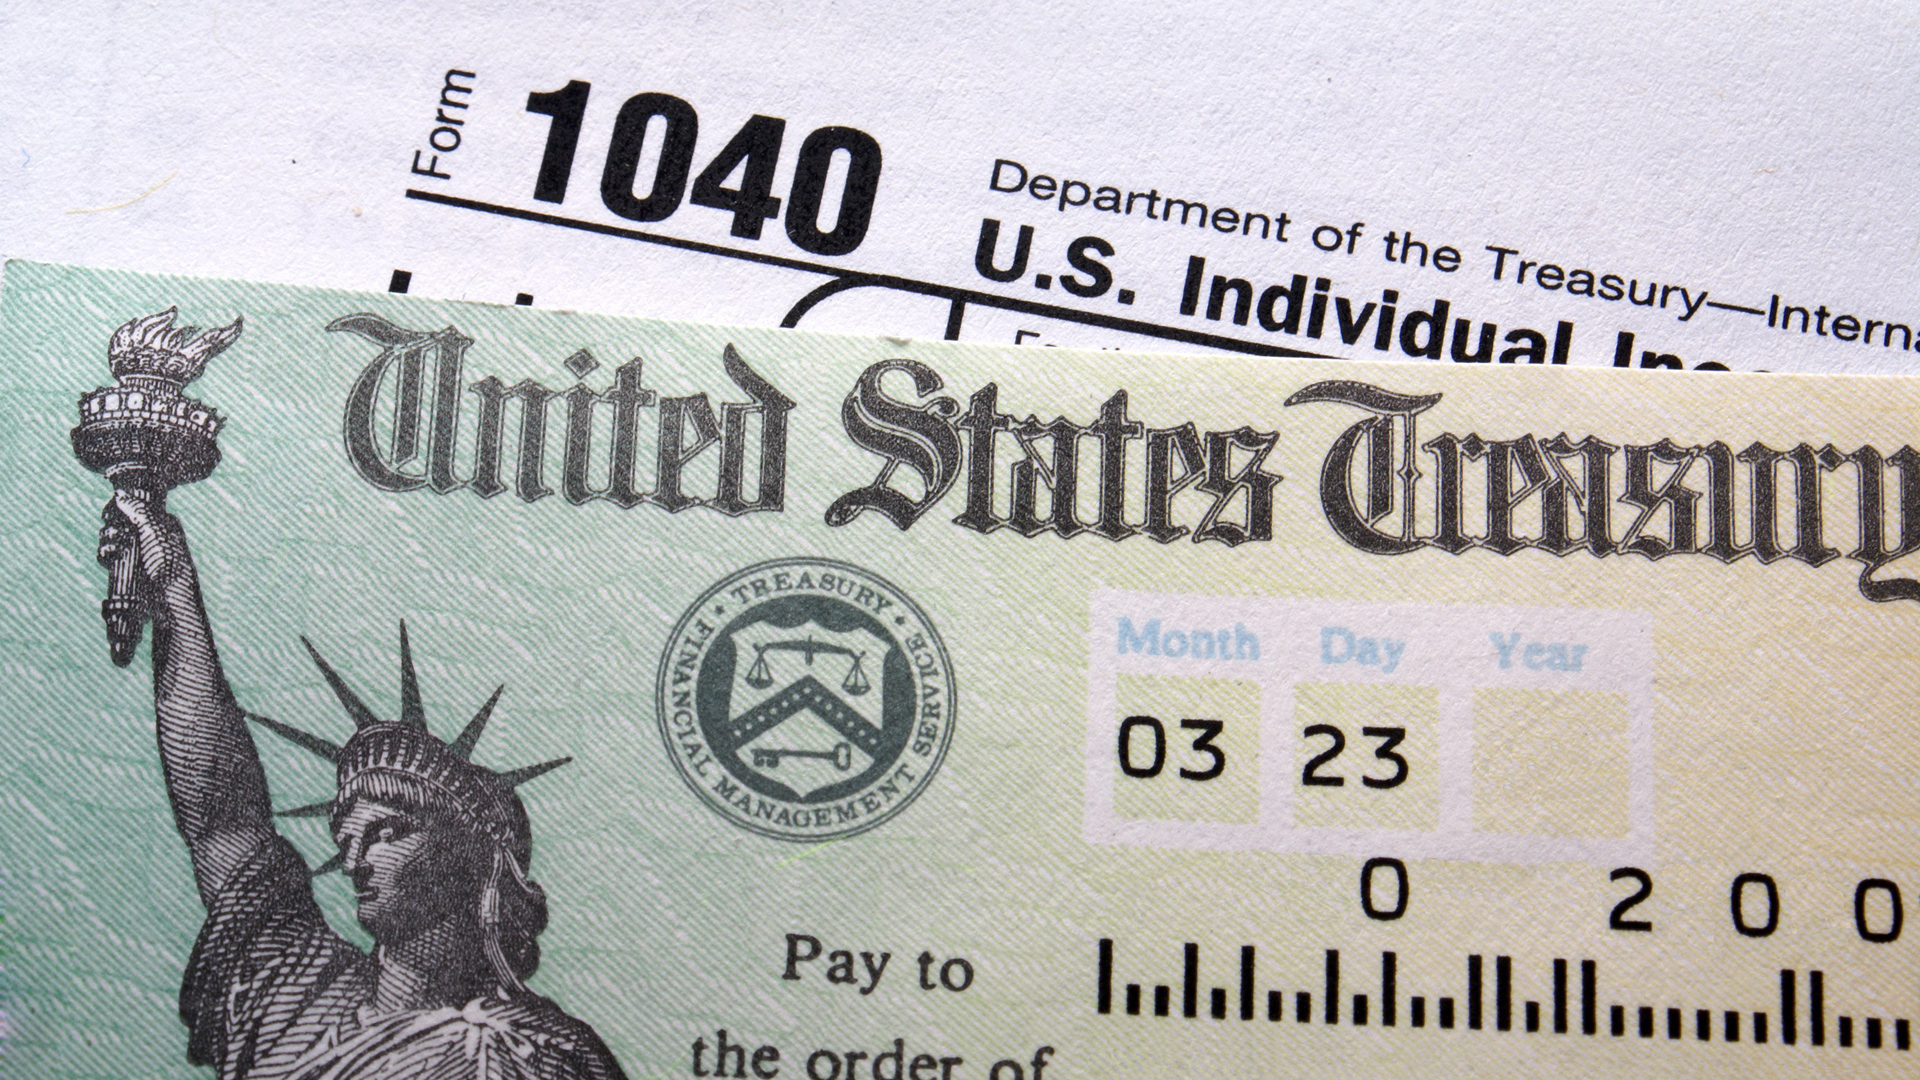 A tax form and a check from the U.S. Treasury are seen in a file image. (Credit: Shutterstock)